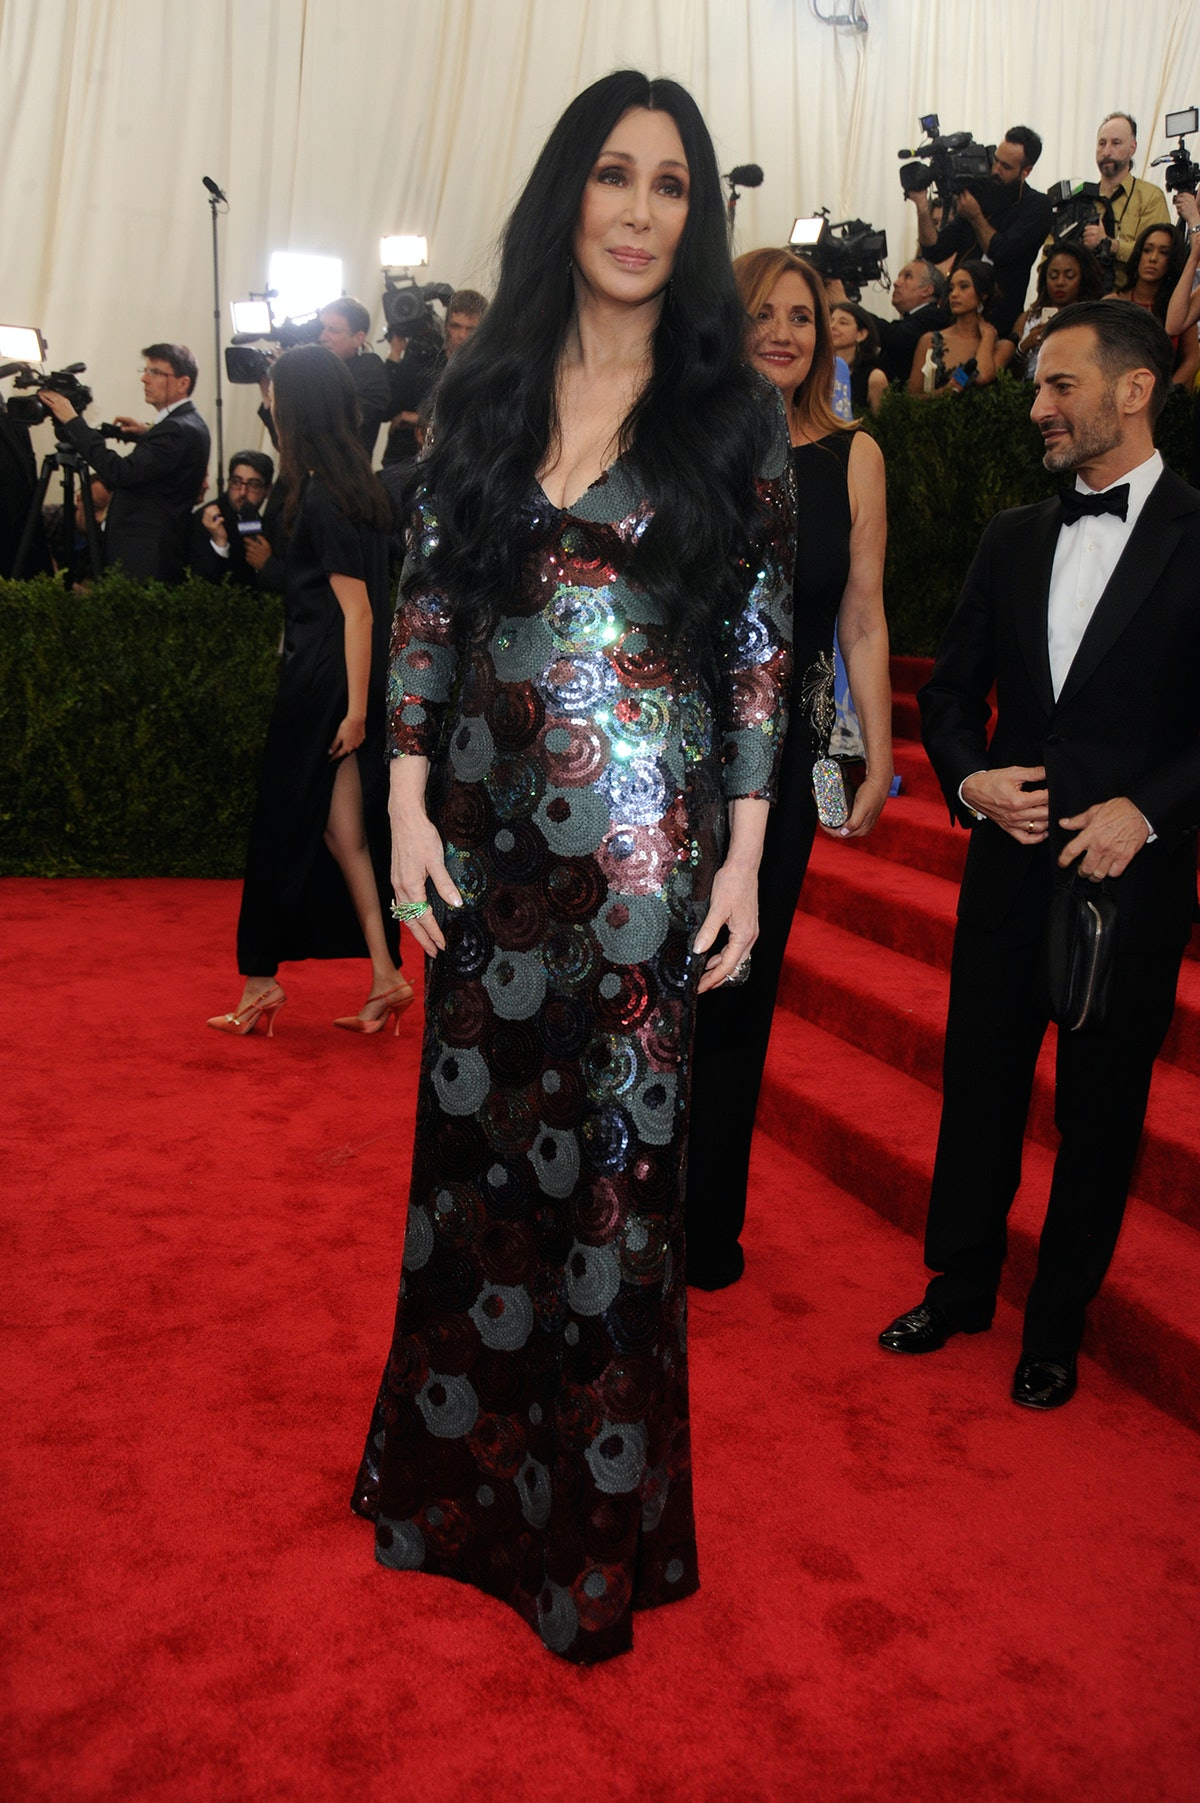 Cher at the 2014 Met Gala